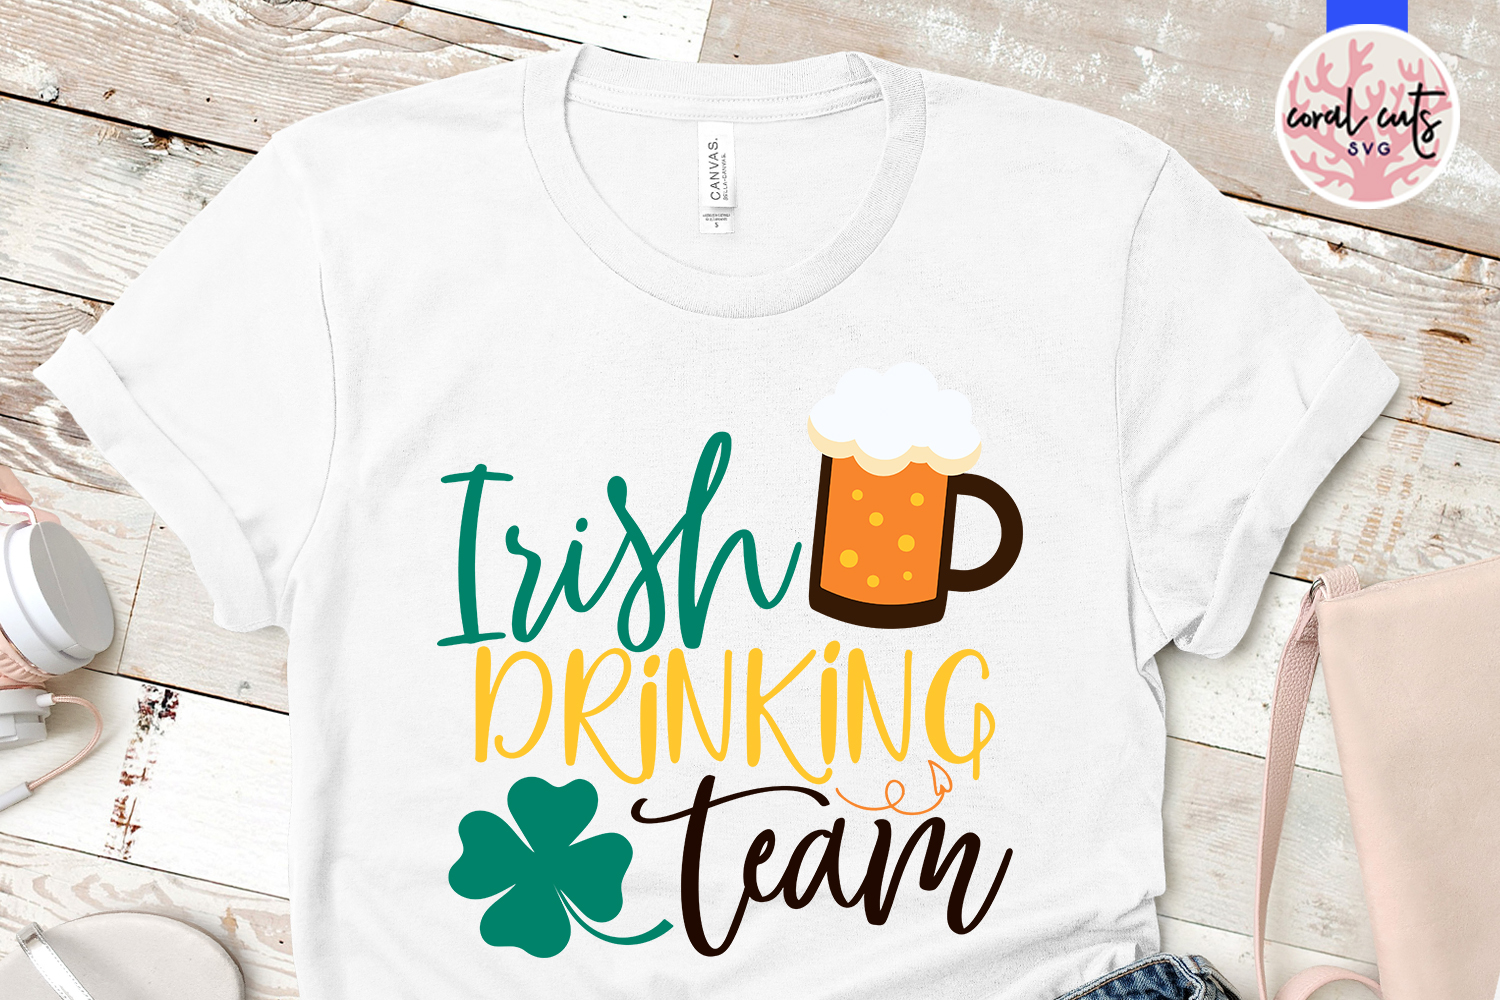 Irish drinking team - St. Patrick's Day SVG EPS DXF PNG example image 2